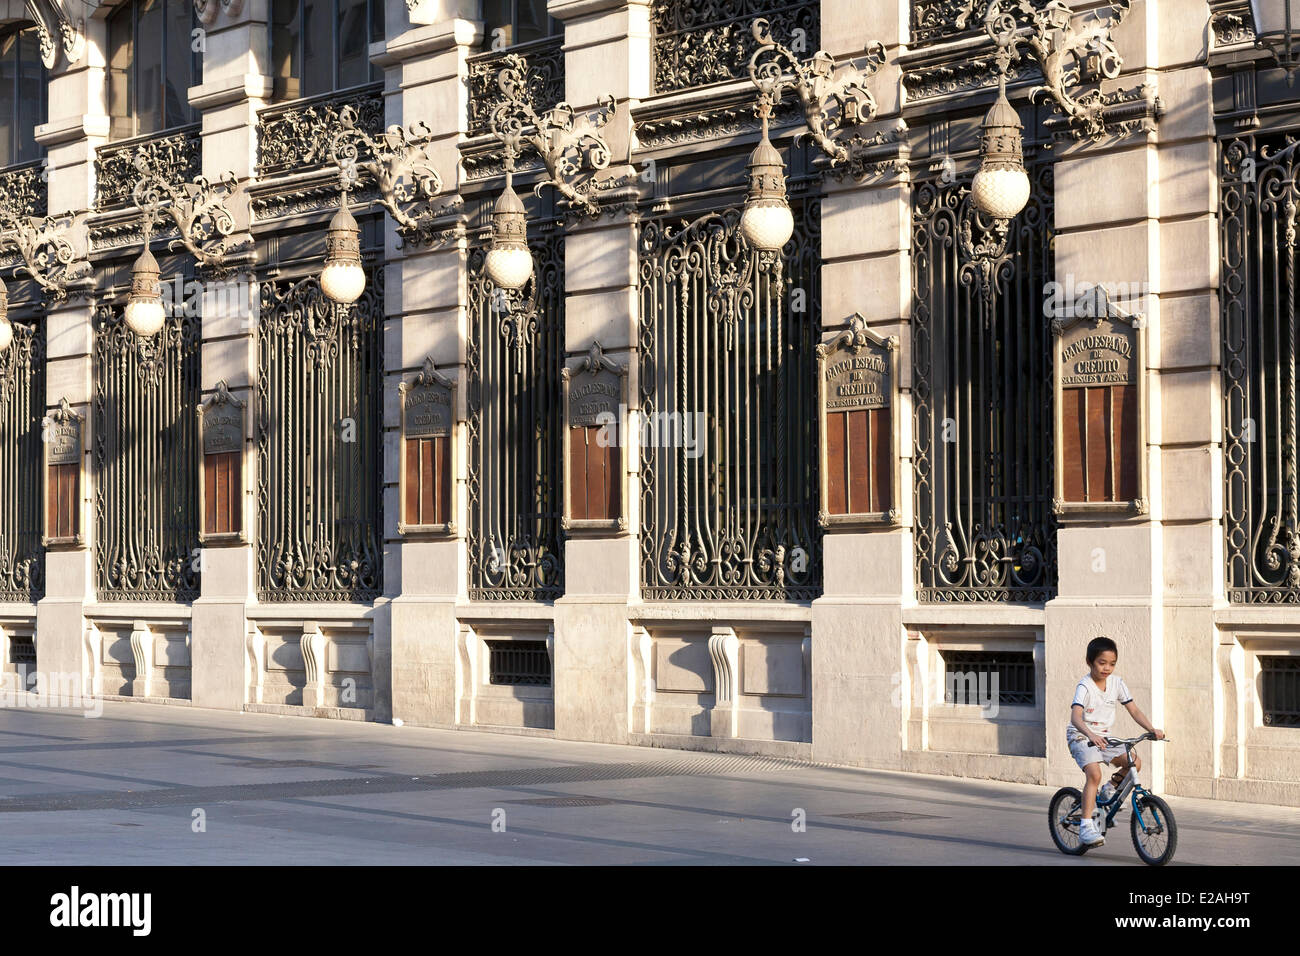 Spain, Madrid, calle de Alcala, Banco Espanol de Credito edifice by architect Grases Riera and opened in 1891 - Stock Image